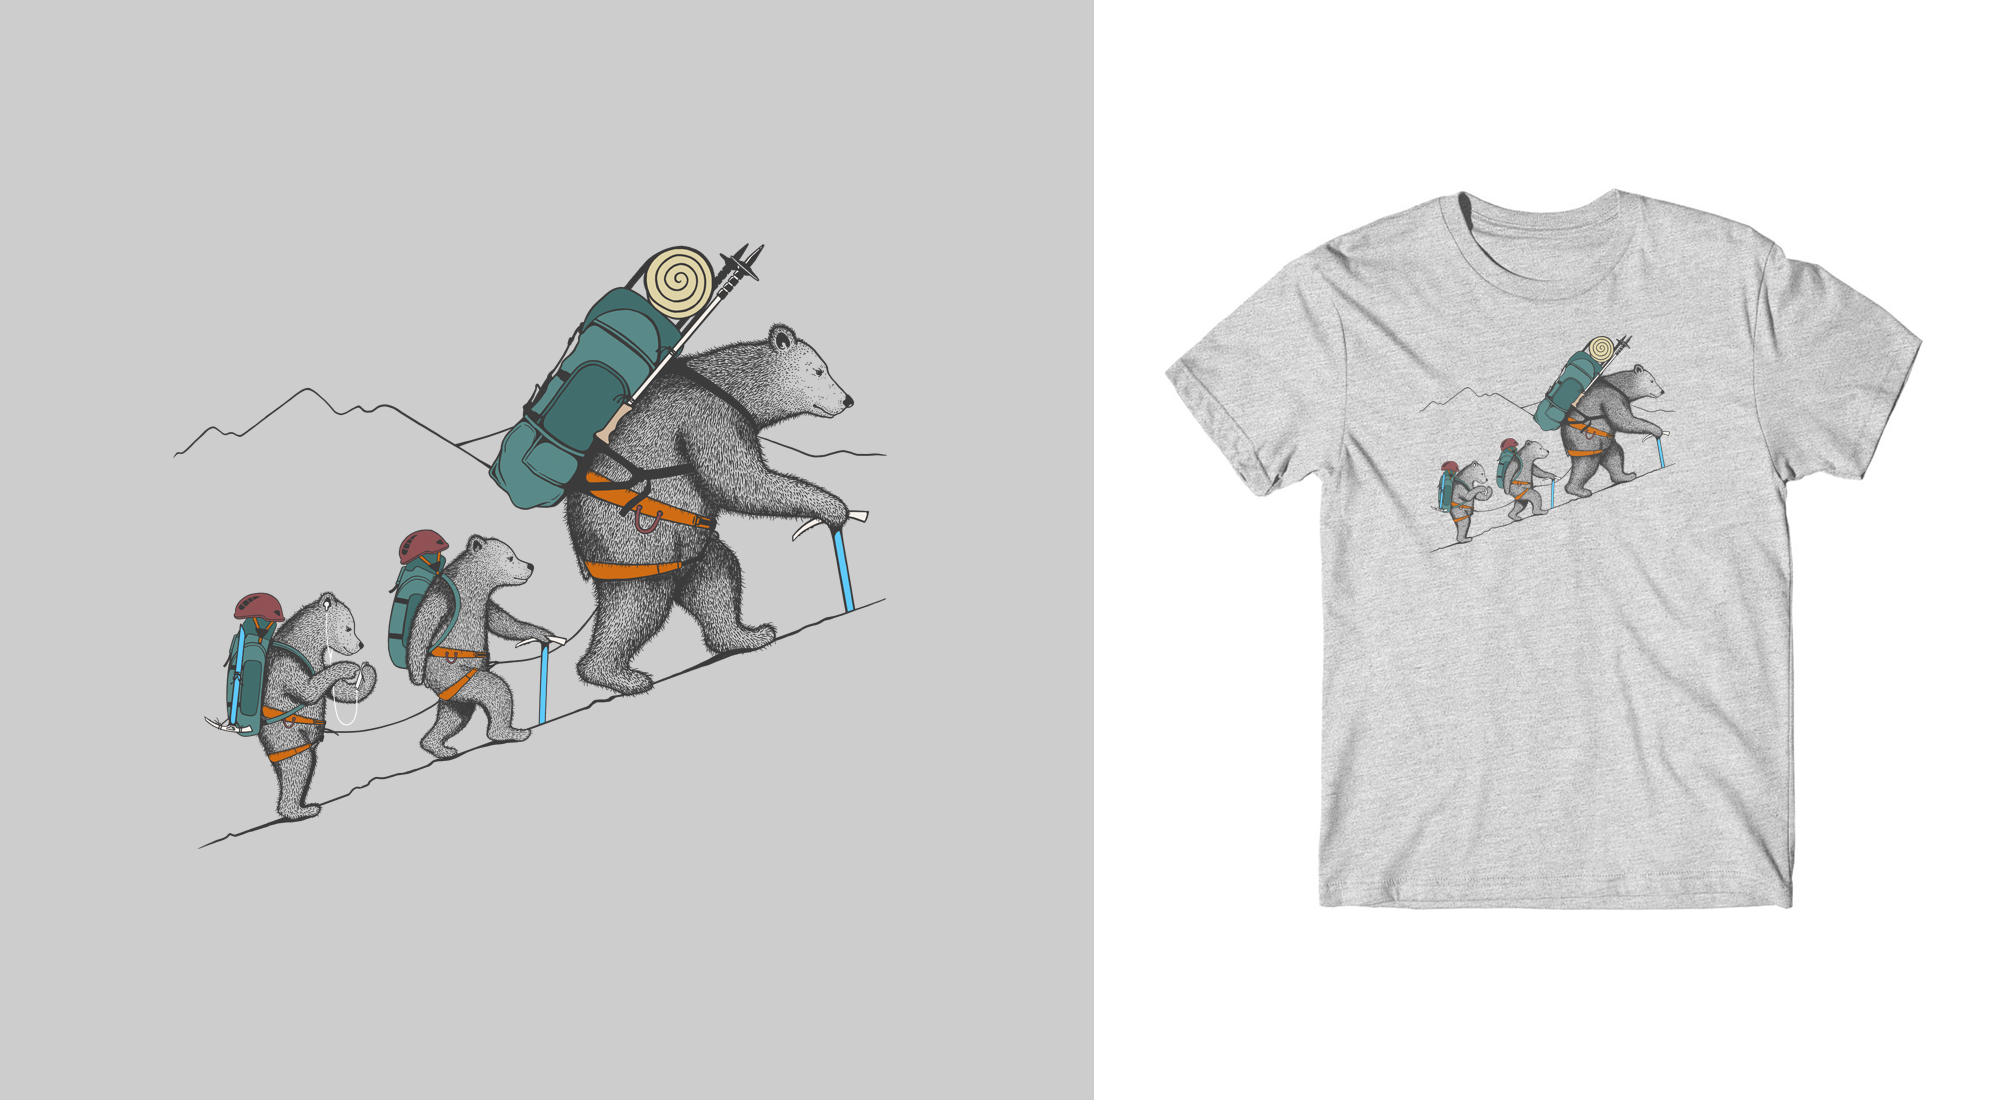 Rock-climbing and mountaineering inspired t-shirts